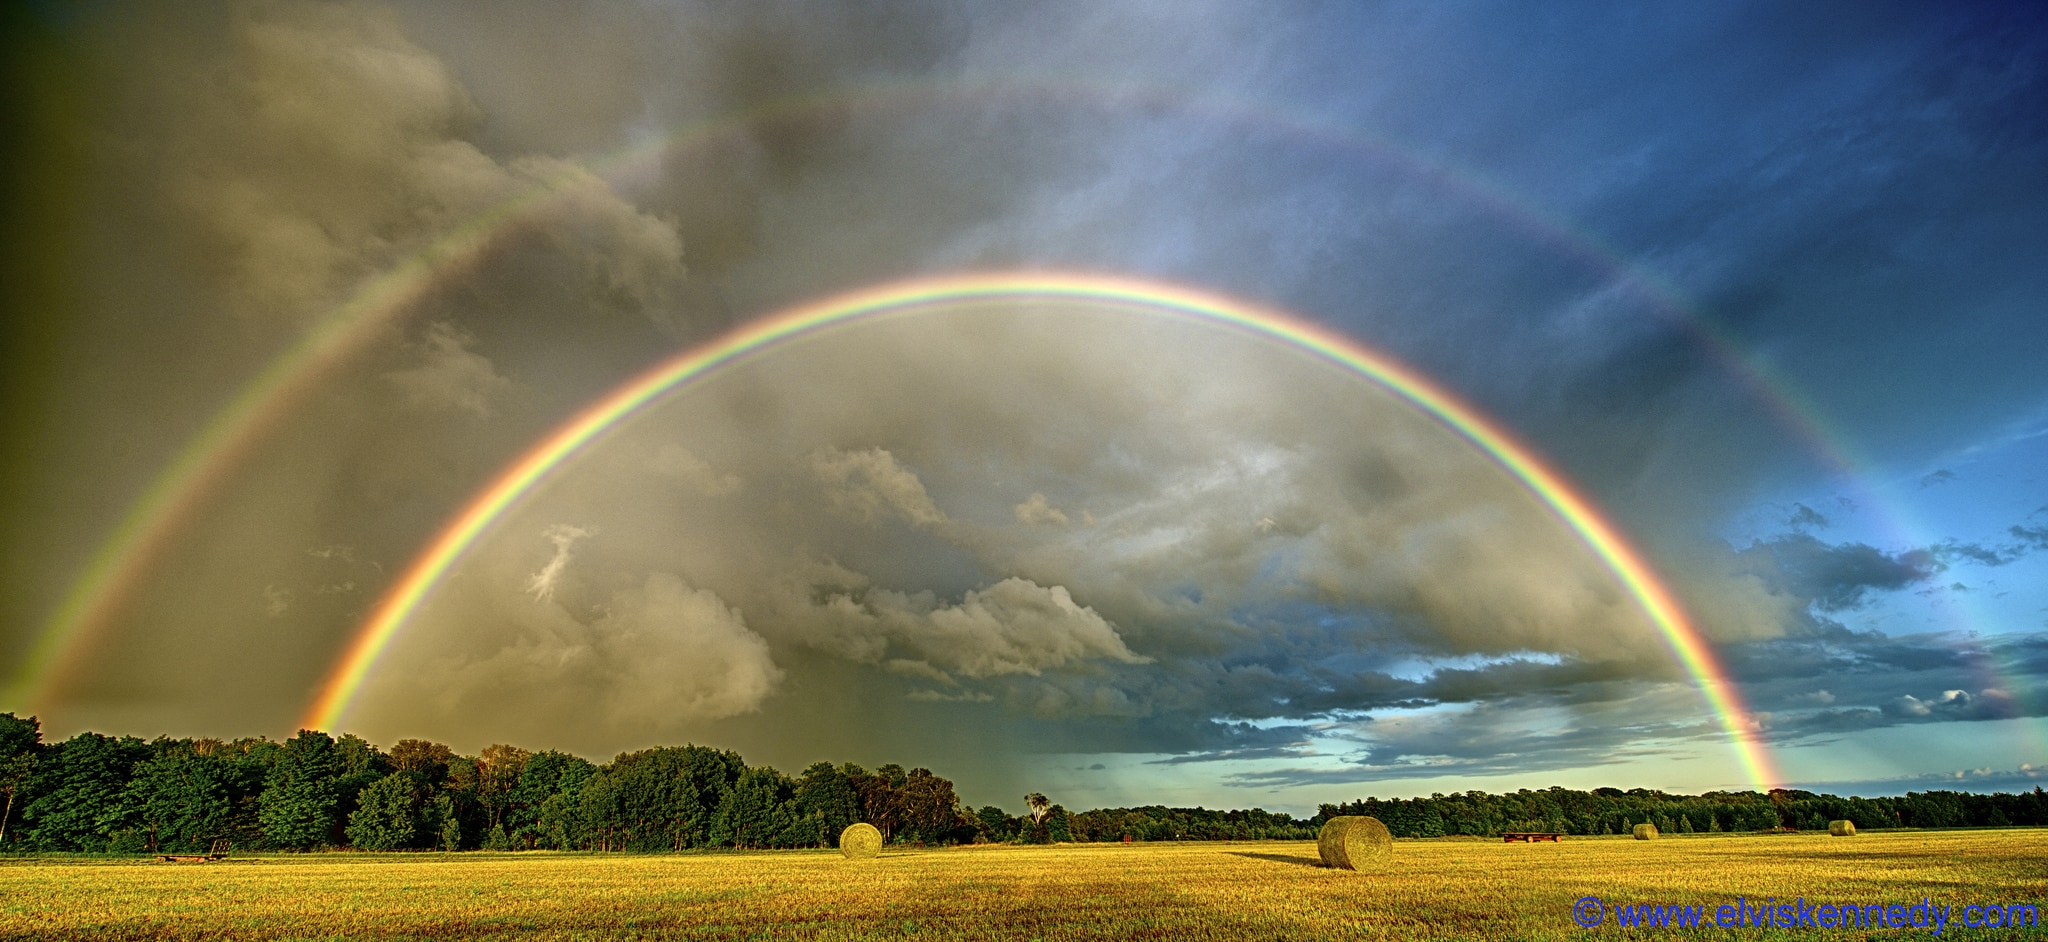 Doble arco iris de Elvis Kennedy